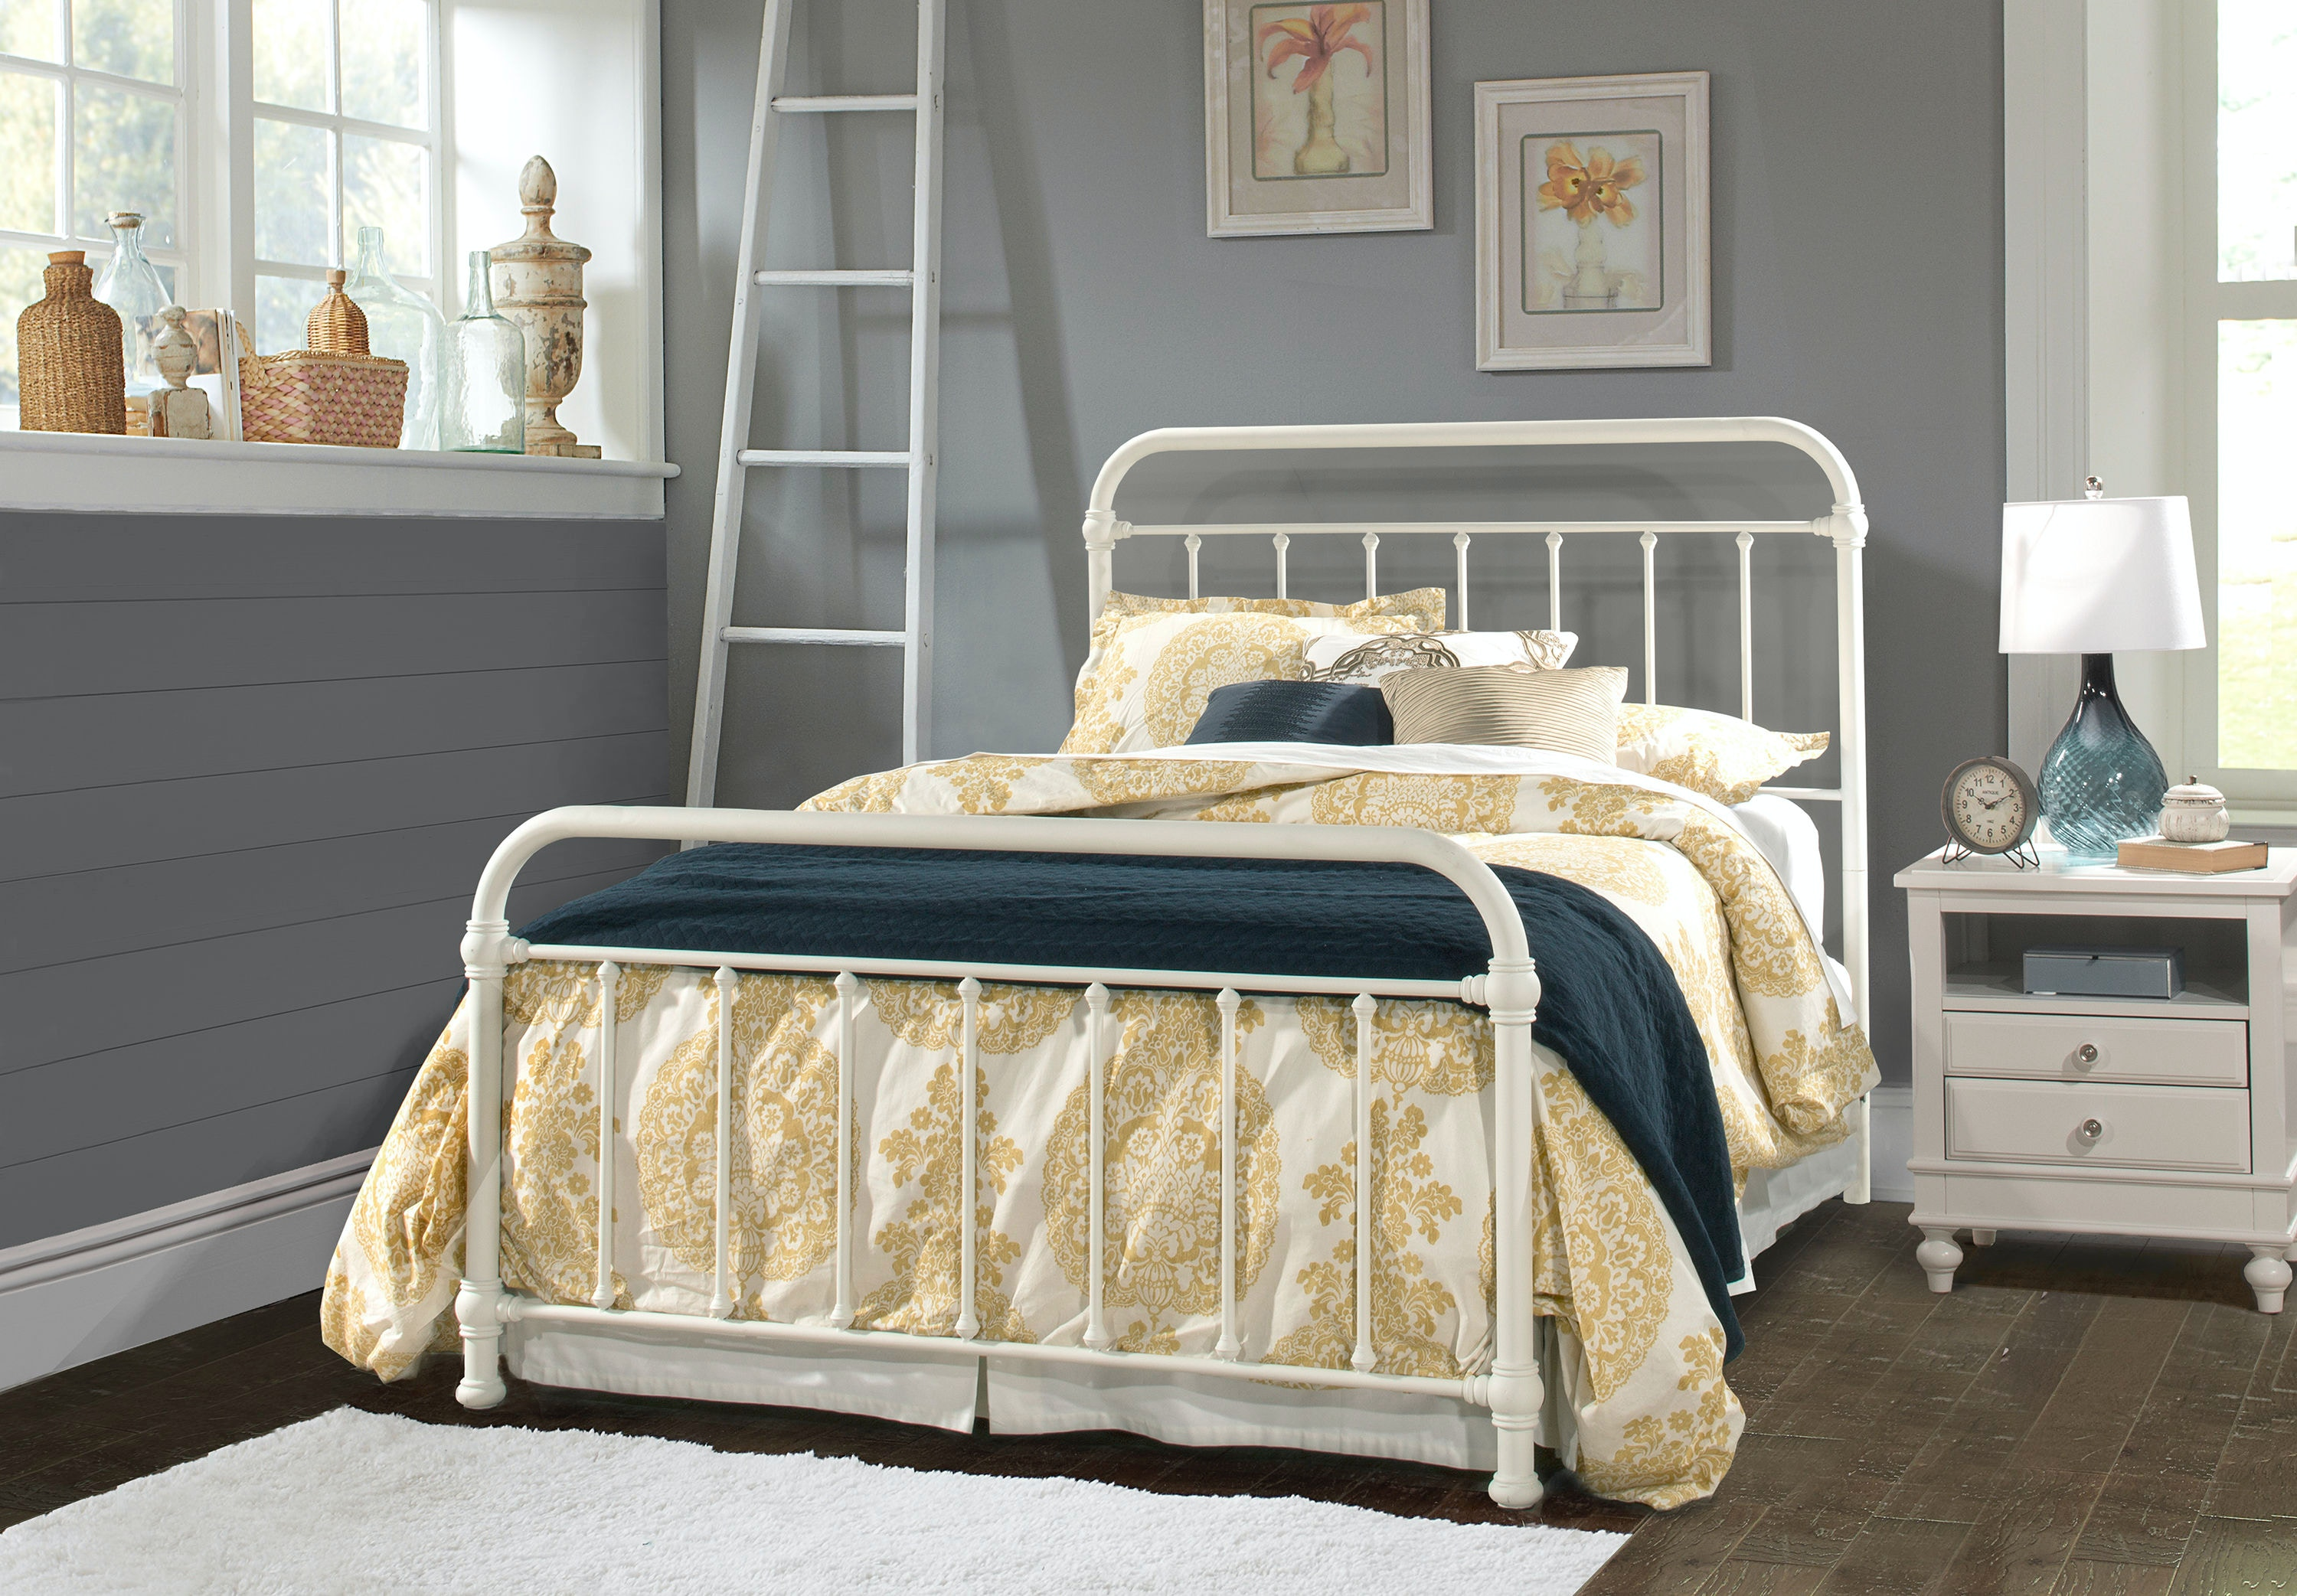 Superb Hillsdale Furniture Youth Kirkland Bed Set   Full 1799 460   Carol House  Furniture   Maryland Heights And Valley Park, MO